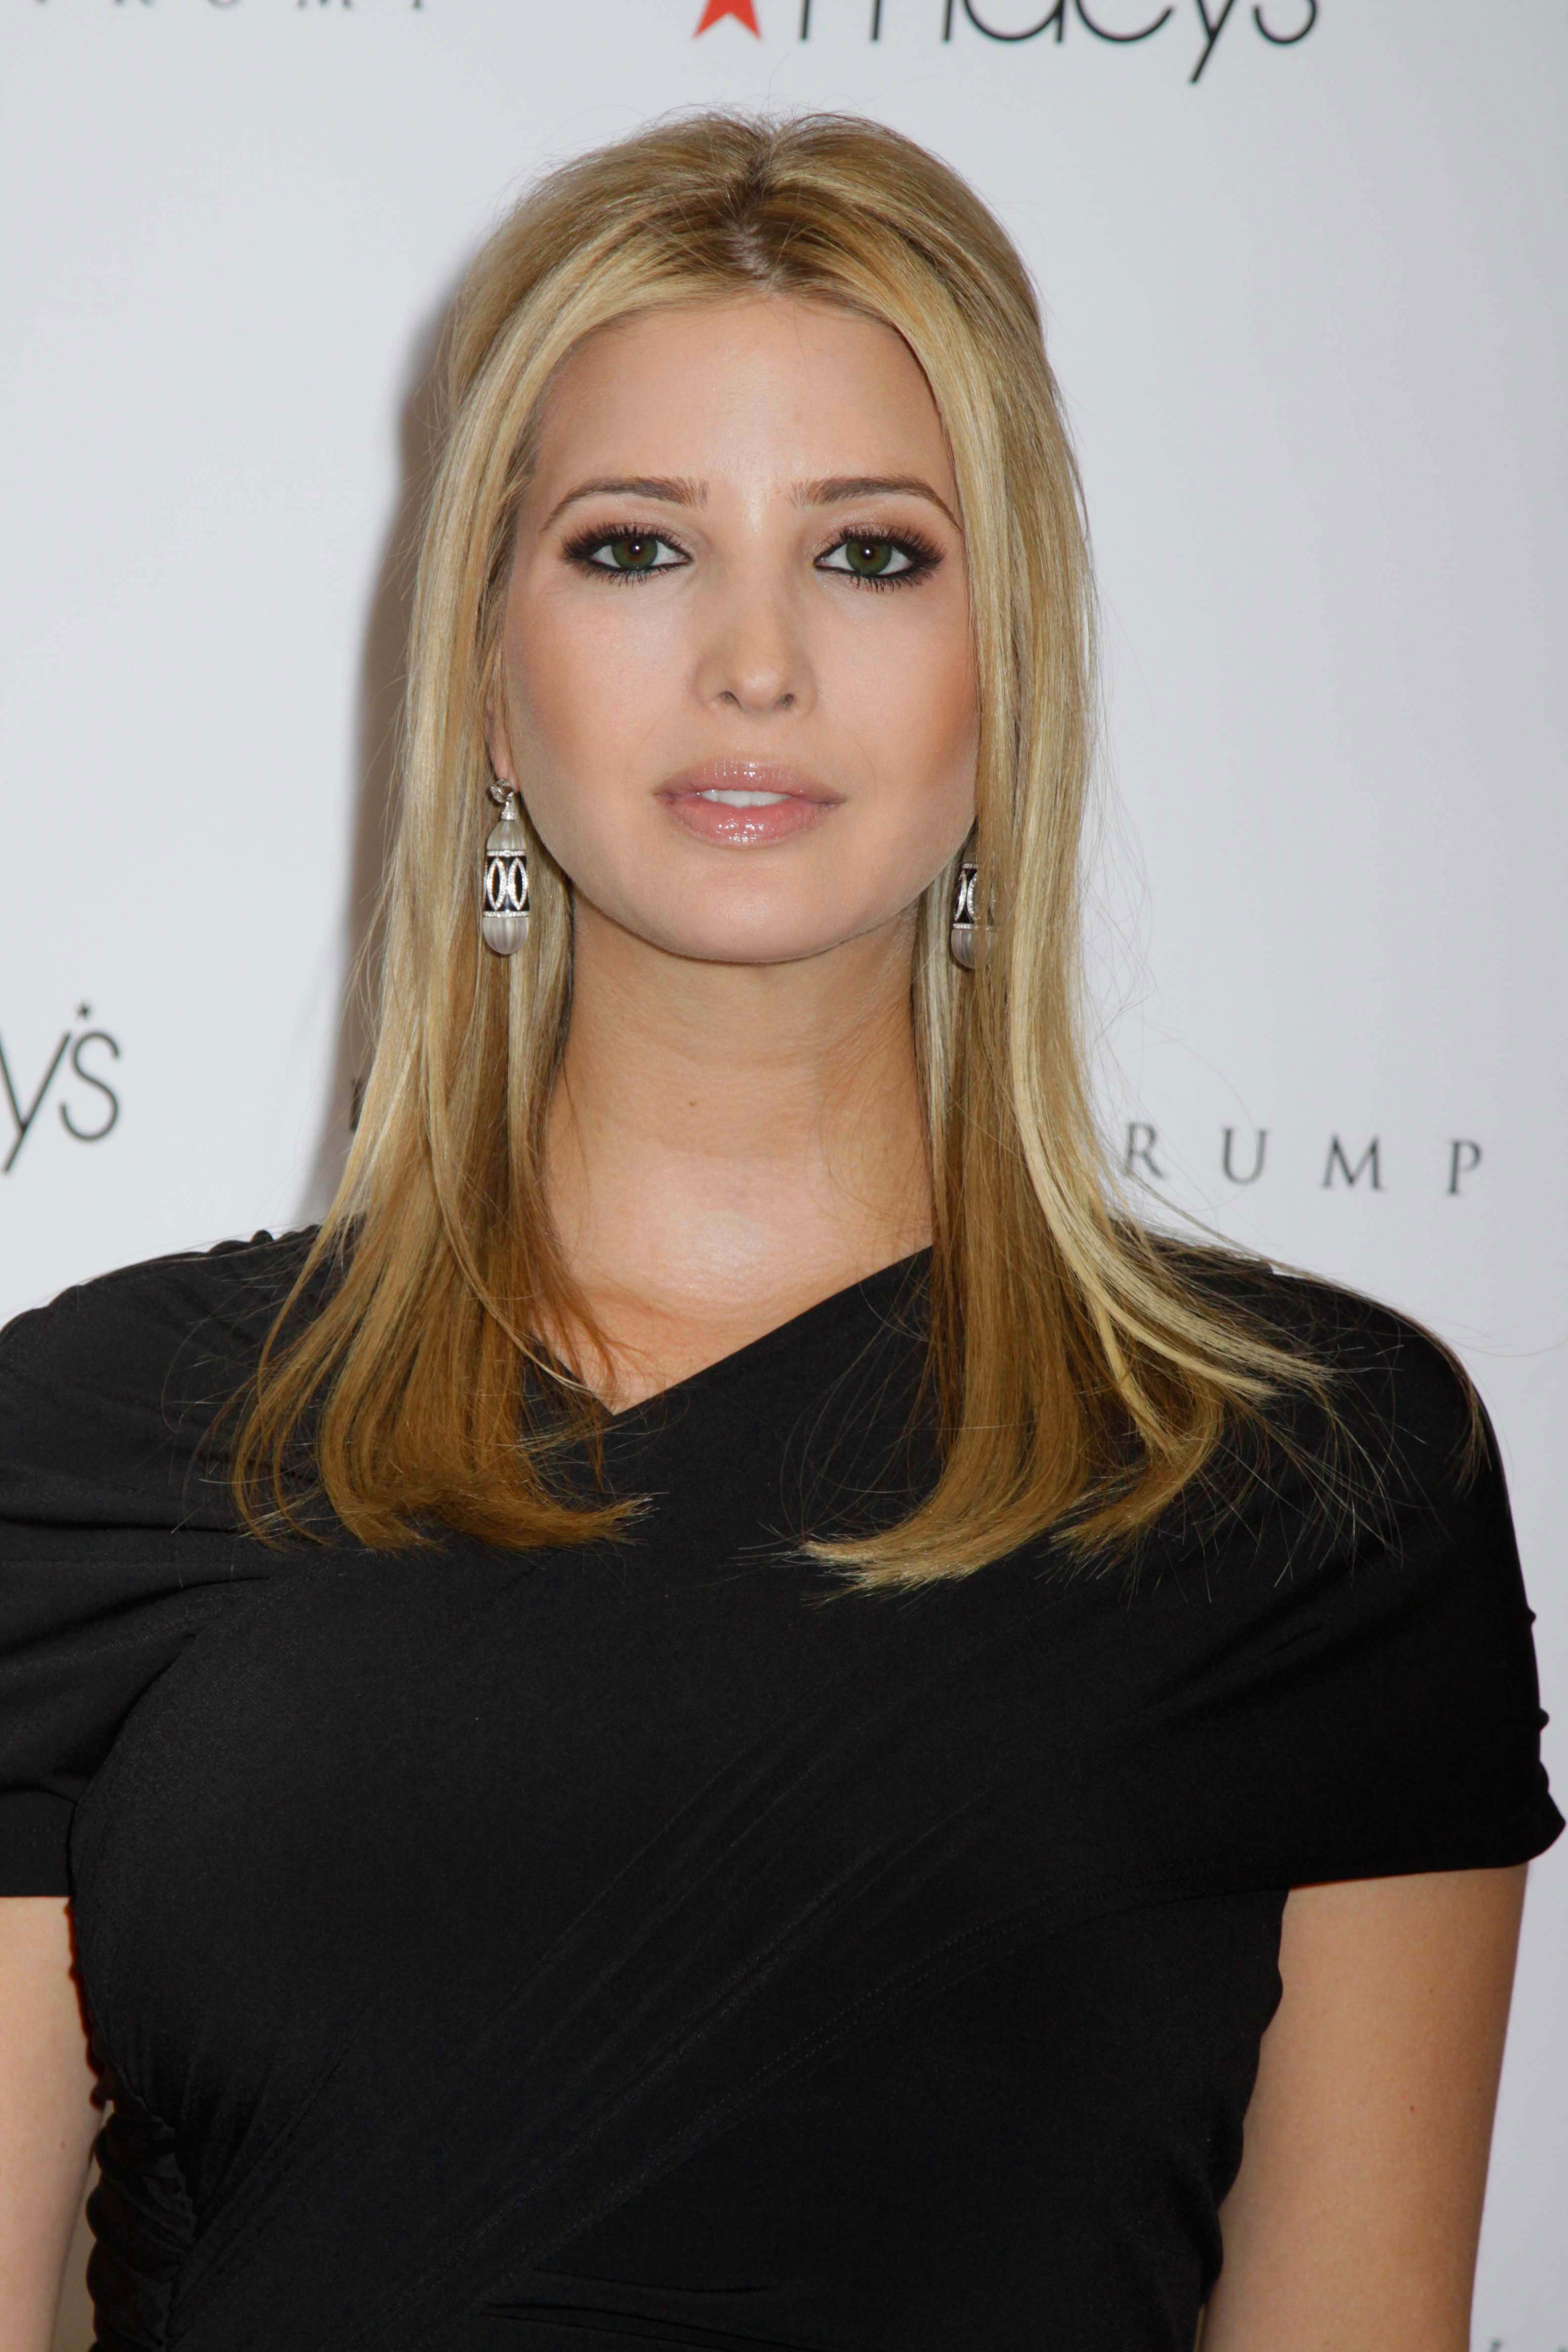 Photo Of Ivanka Trump 359000 Upload Date 2011 03 21 There Are 354 More Pics In The Gallery